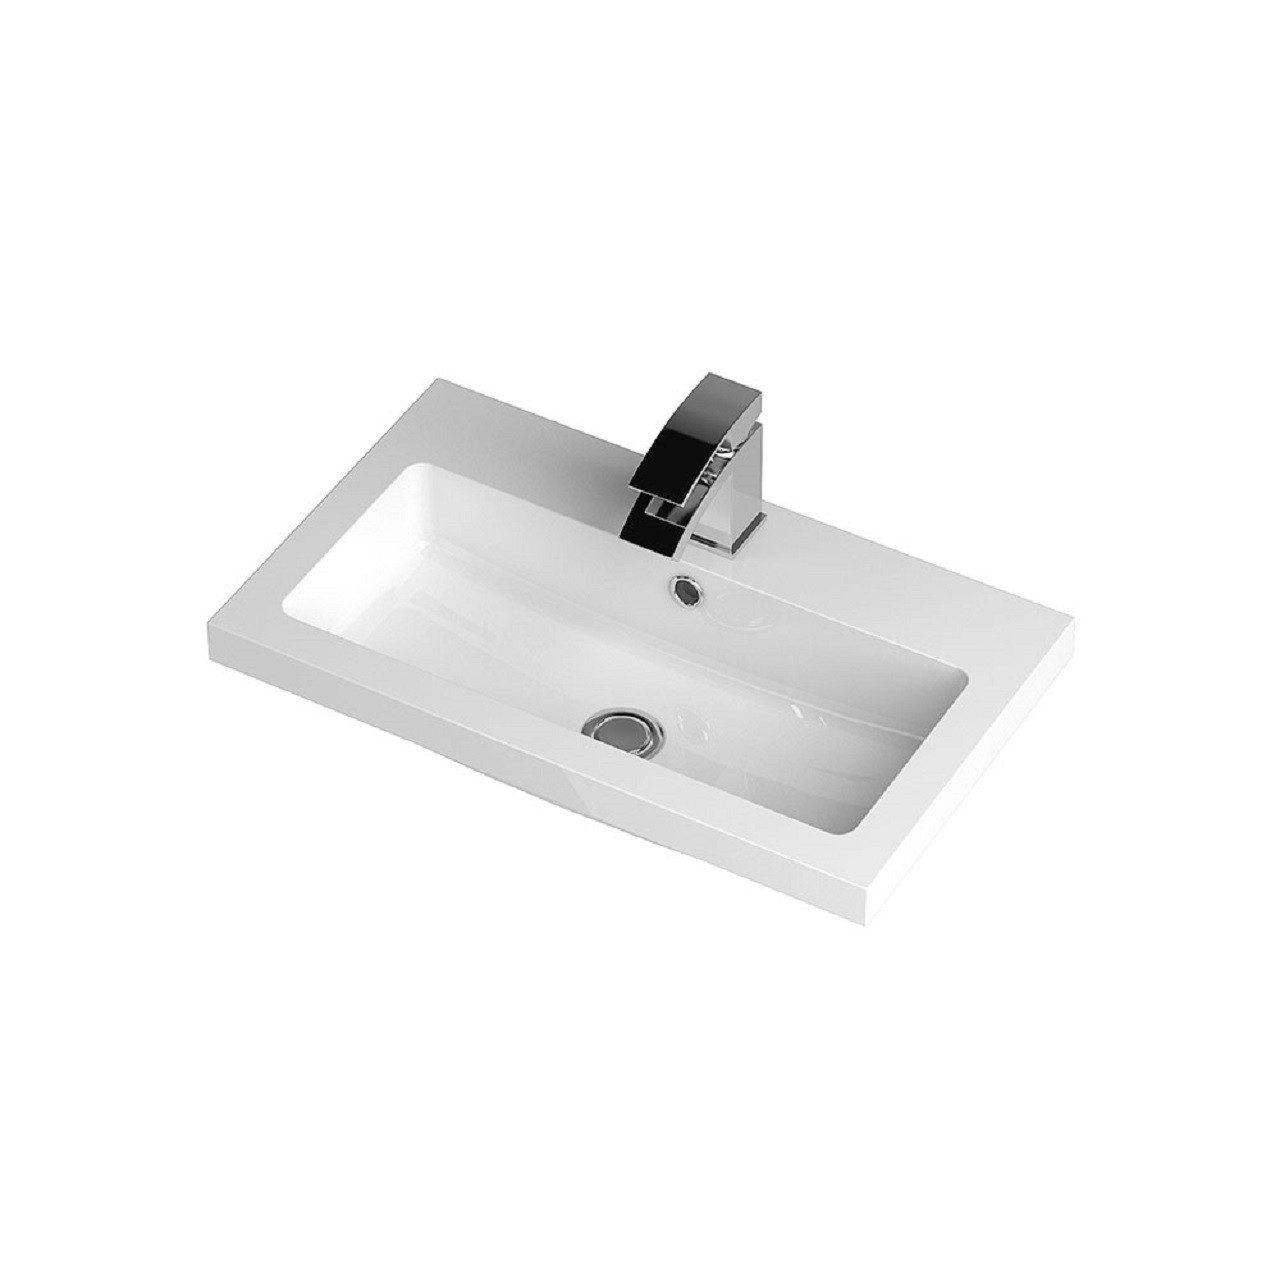 Hudson Reed 603mm x 355mm Polymarble Basin with 1 Tap Hole - PMB313